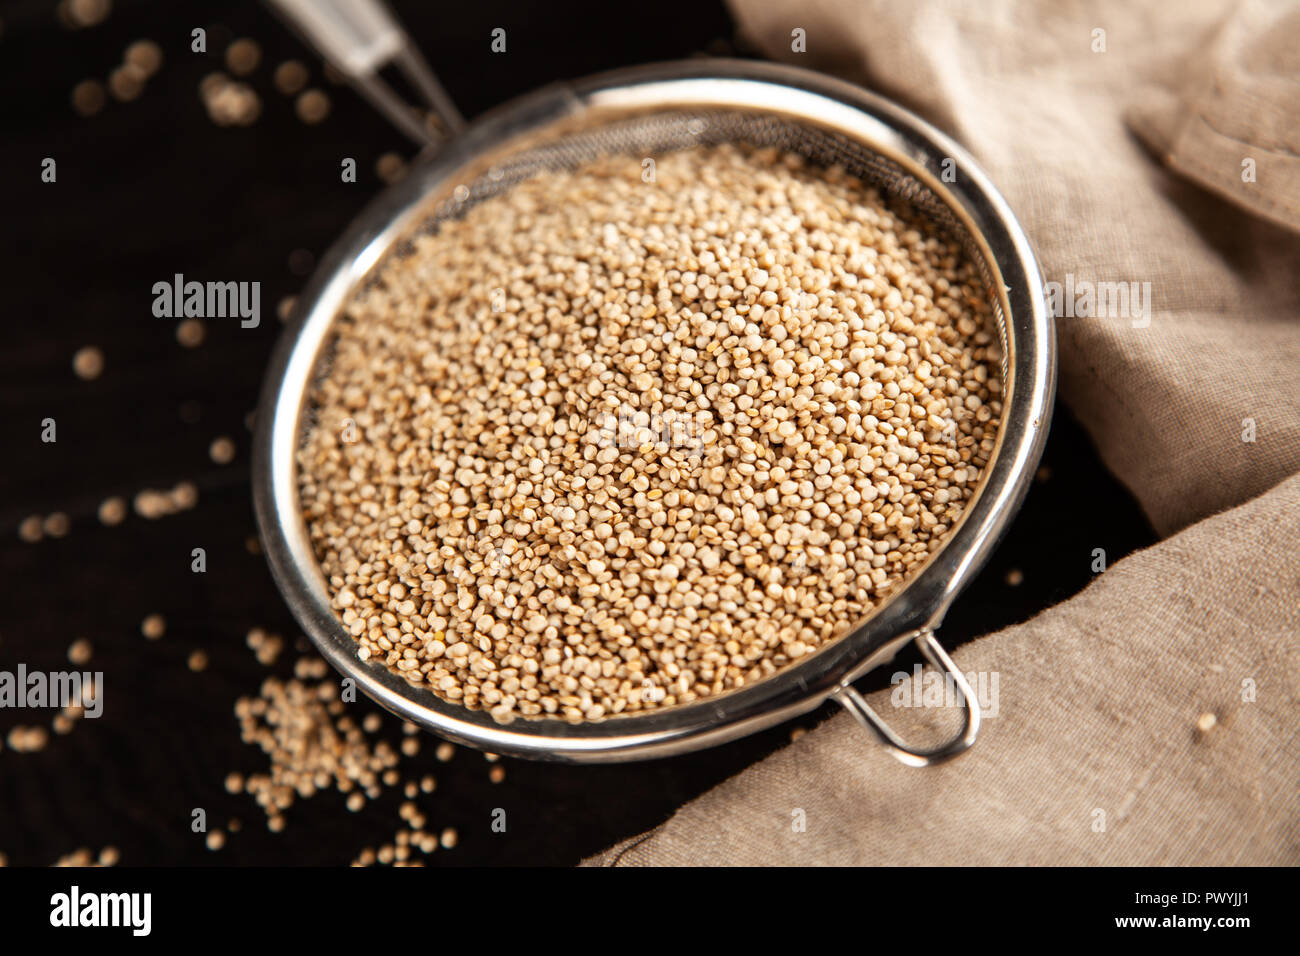 Raw quinoa seeds in a glass jar - Stock Image